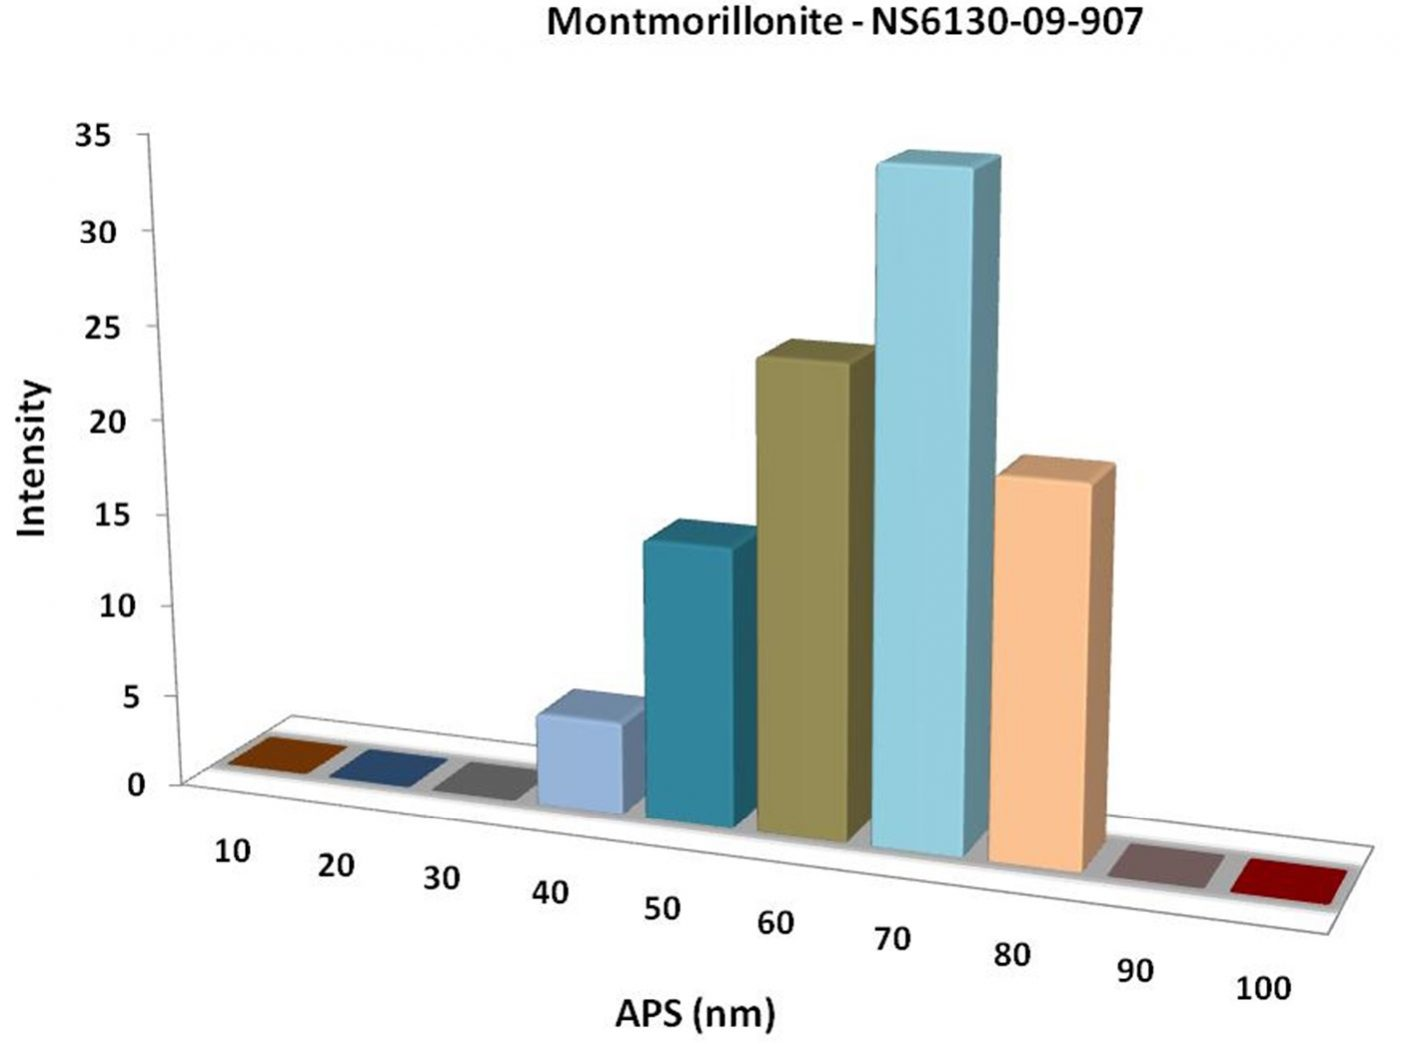 Particles Size Analysis - Montmorillonite Clay